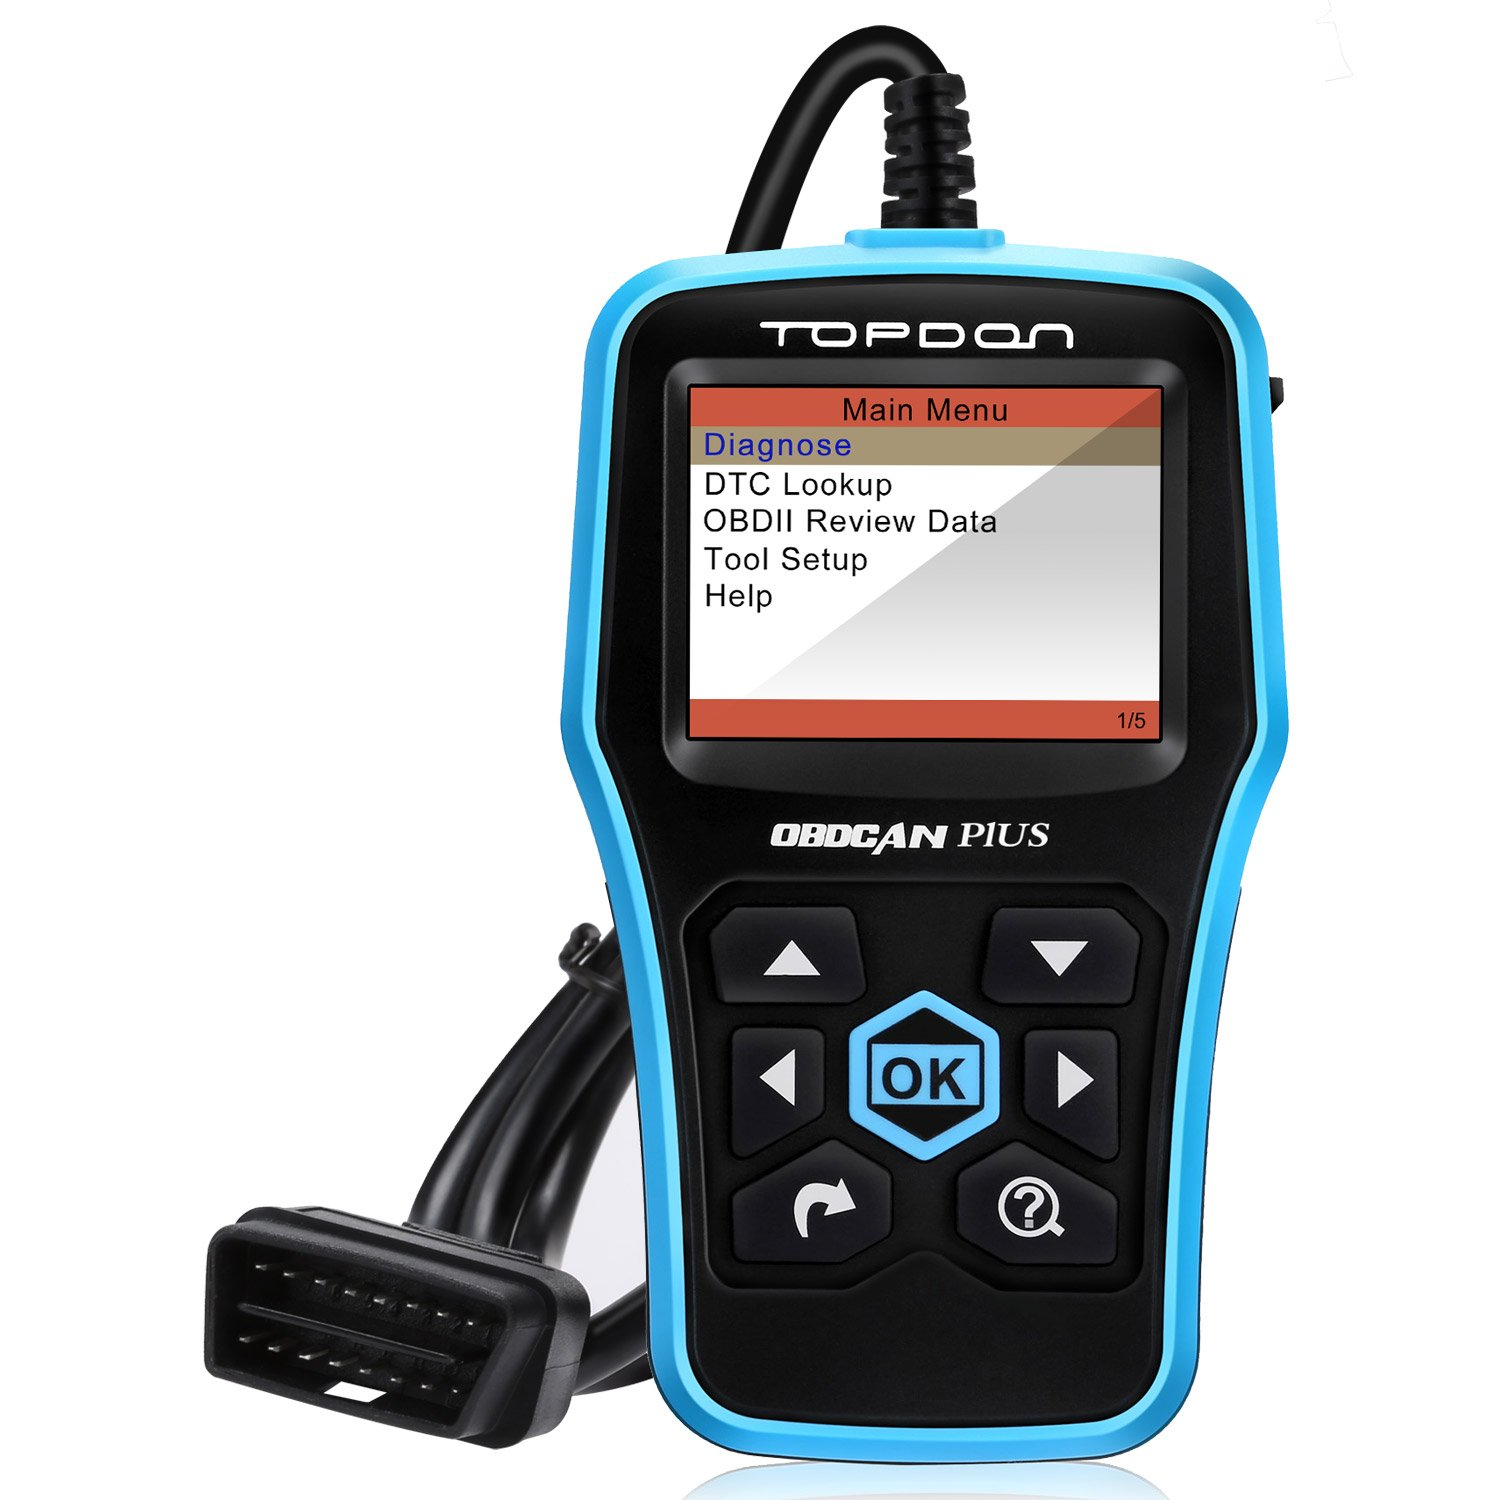 Amazon.com: Code Reader TOPDON PLUS Diagnostic Scan Tool Full OBDII  Functions in Graphical Display DTC Lookup Turn off MIL plus Prints Data +  Free Upgrade: ...